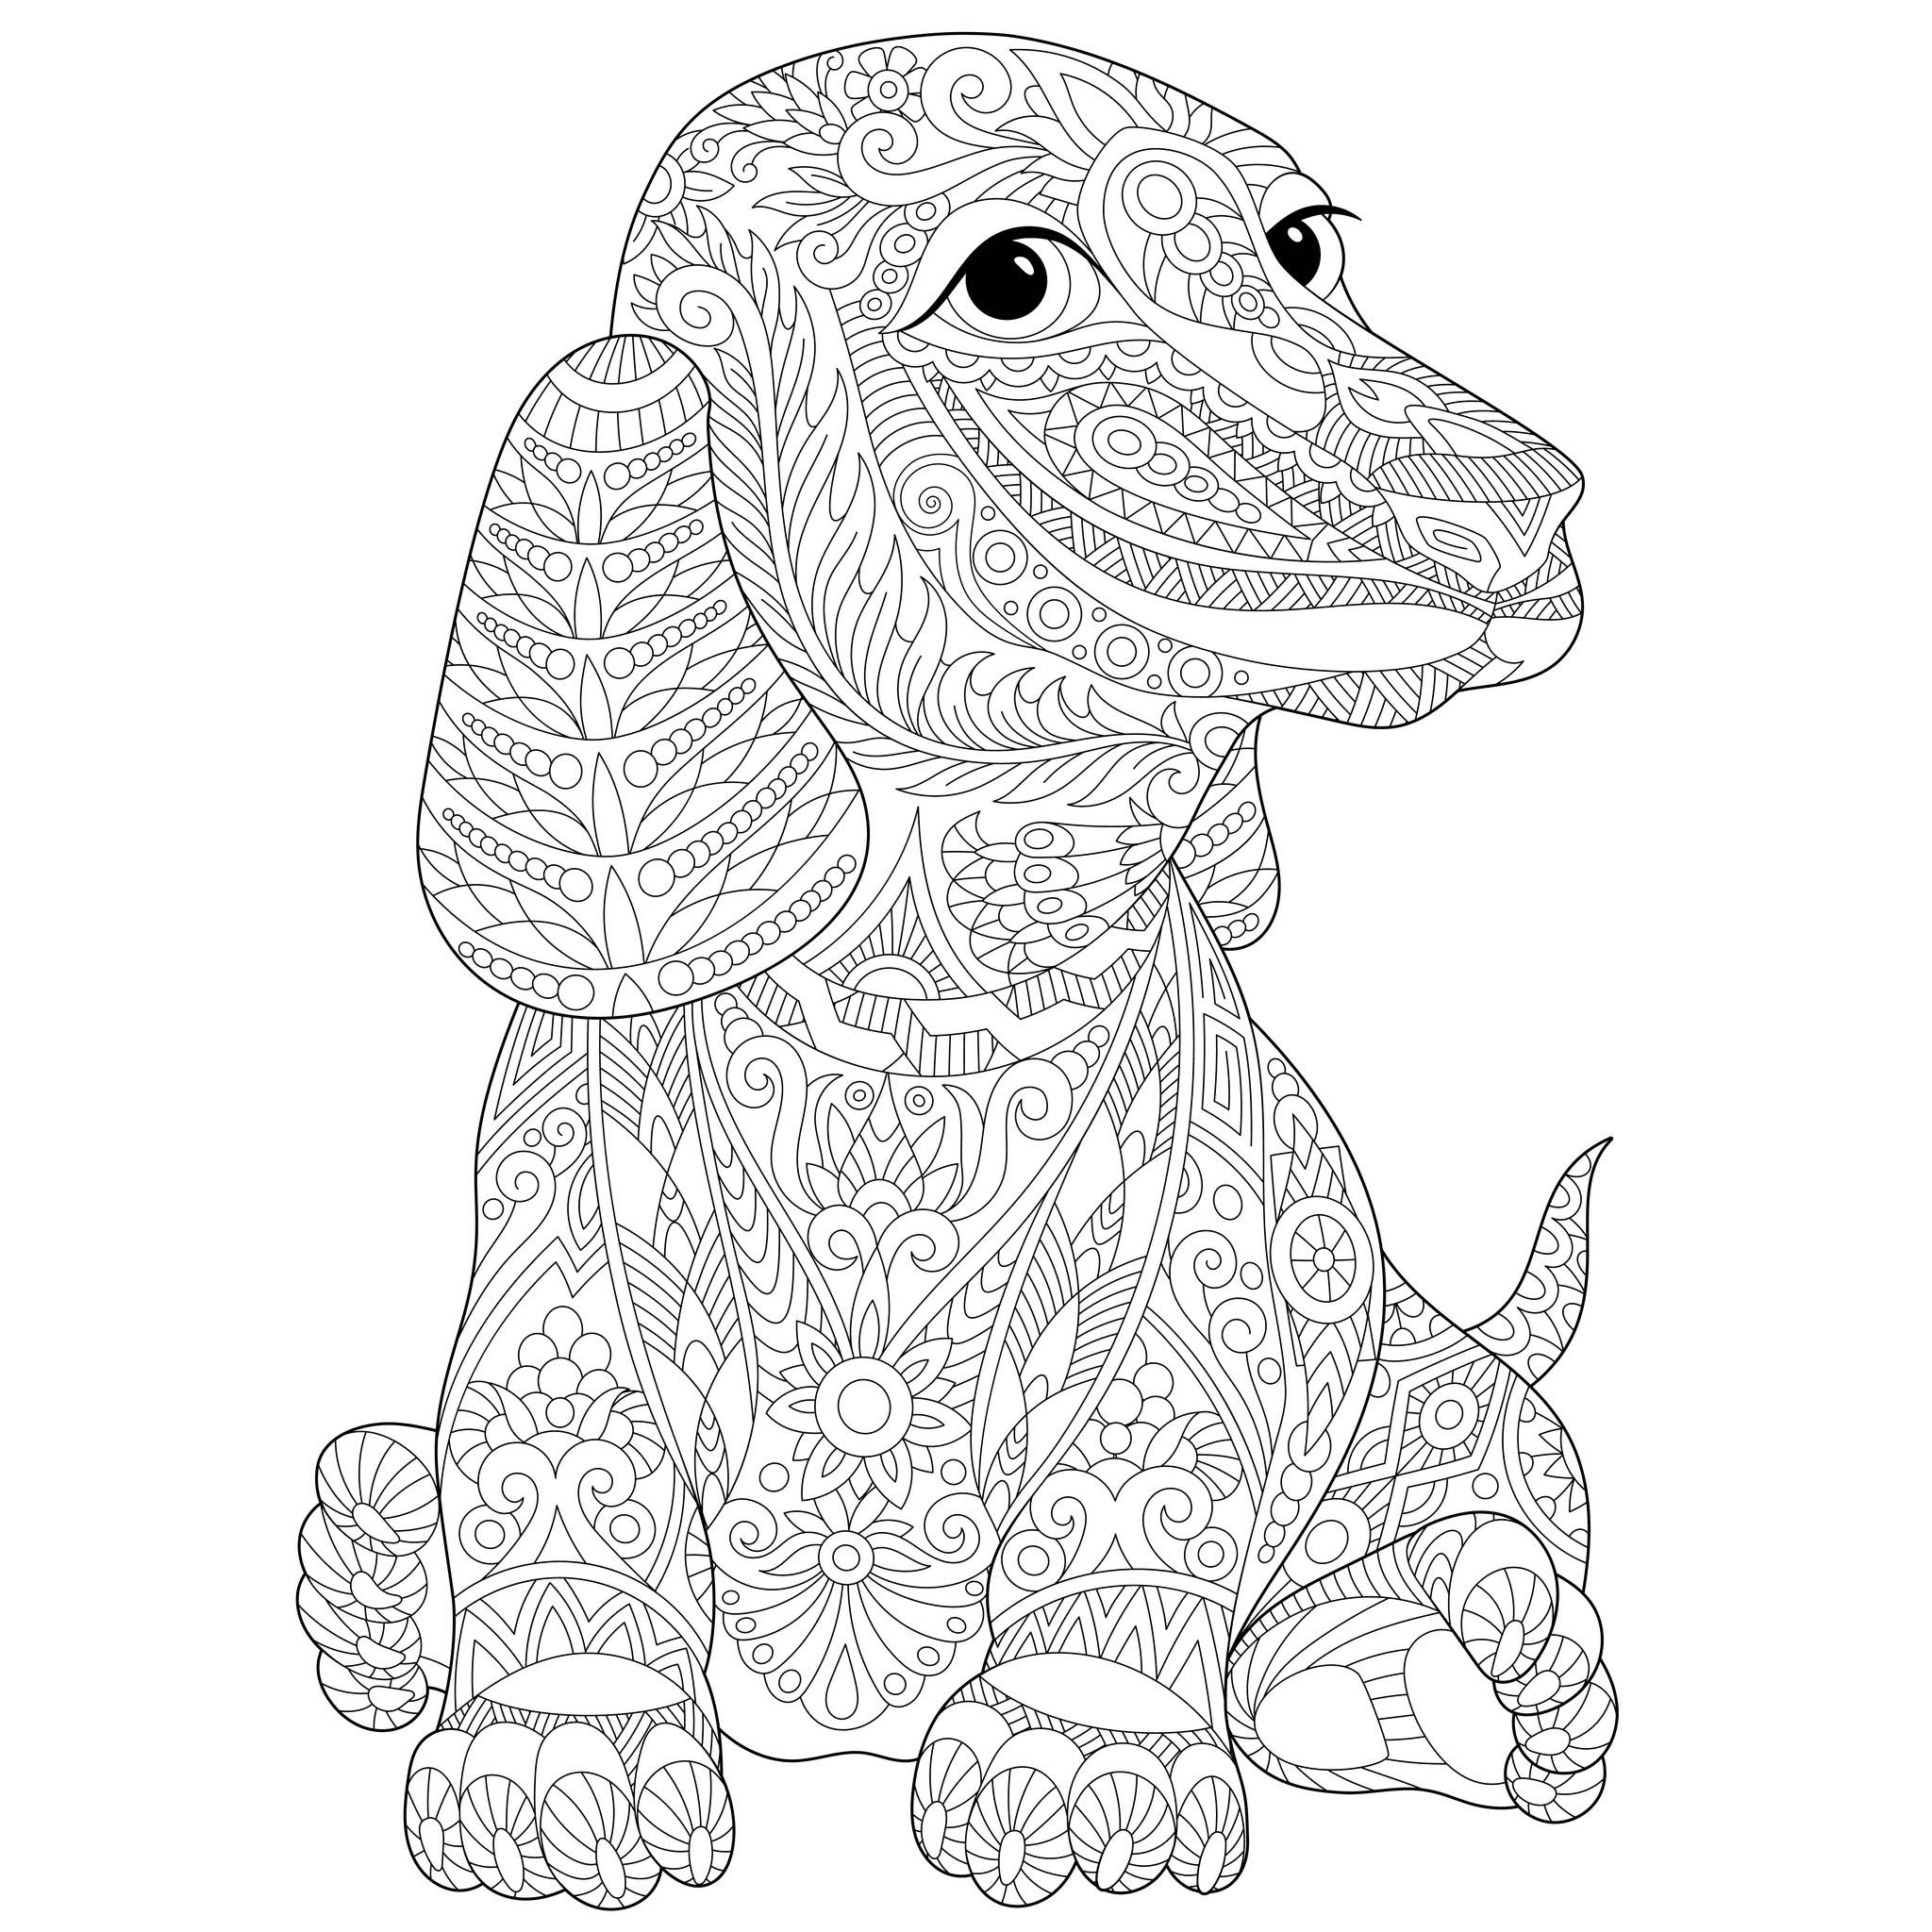 coloring dog for kids employ dog coloring pages for your childrens creative time kids coloring for dog